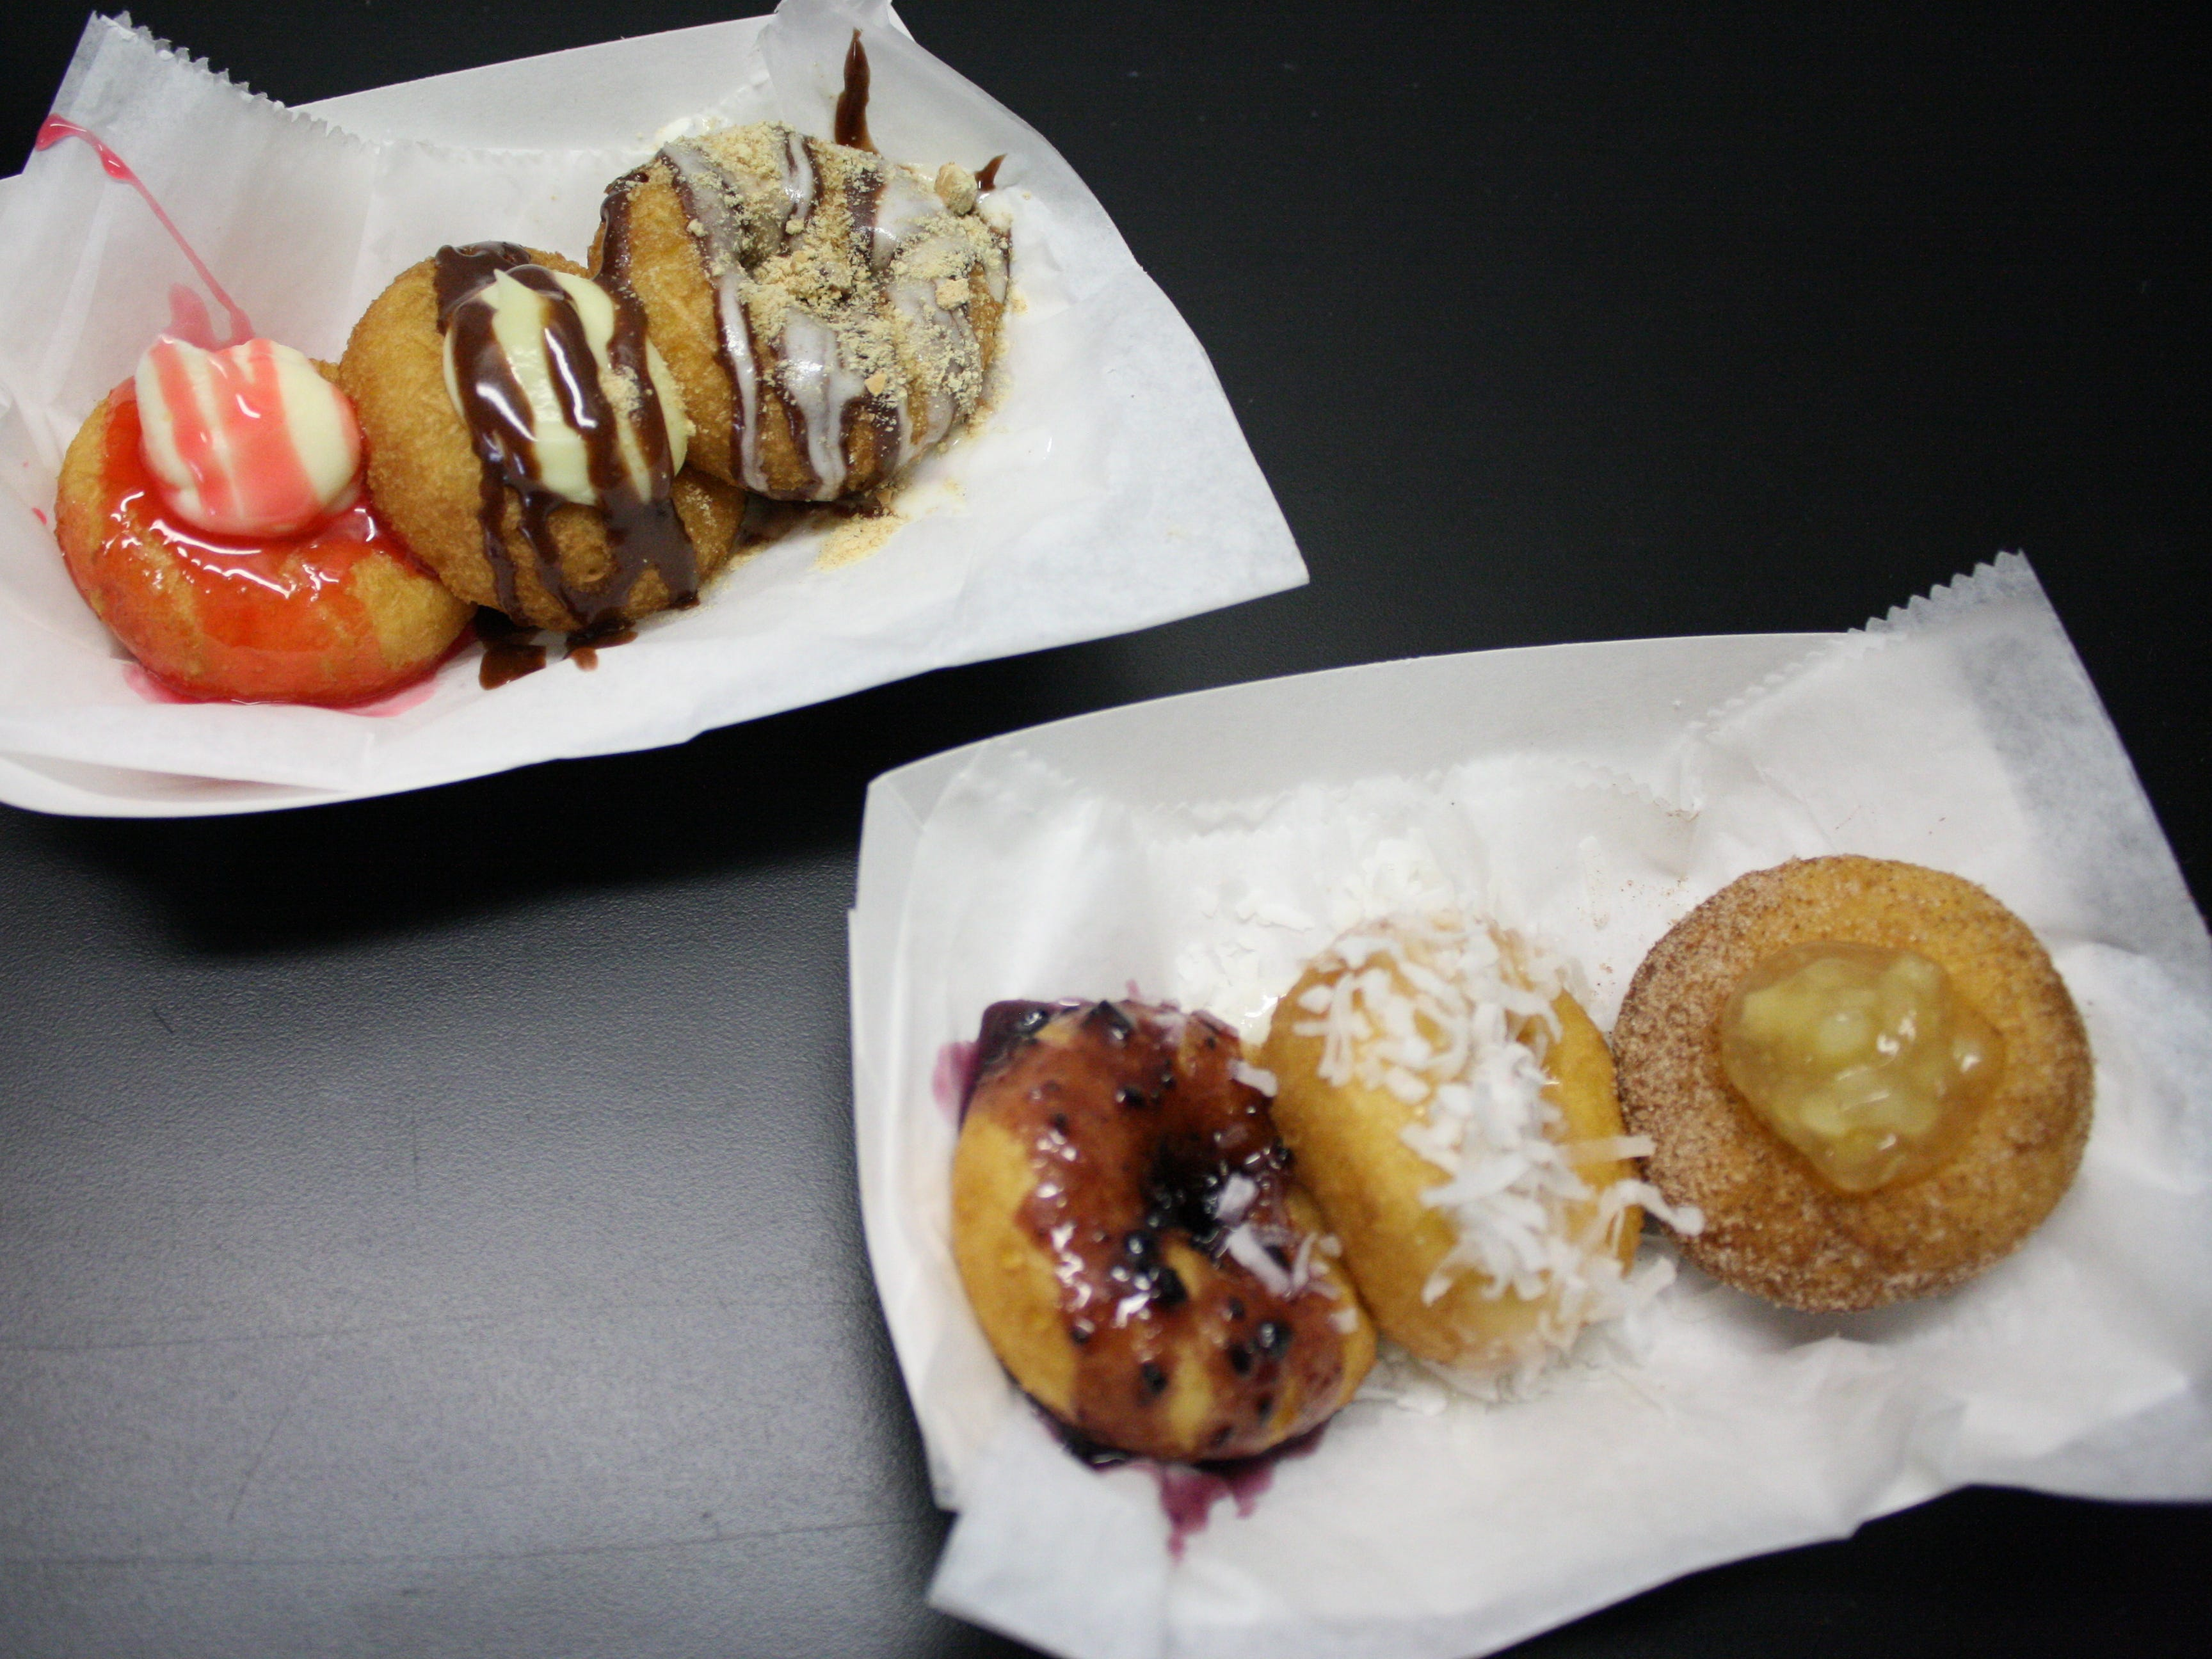 The JukeBox Donut Shop creates made-to-order donuts and other baked goods inside a mobile food truck. The truck can be seen at local events, festivals and private functions.